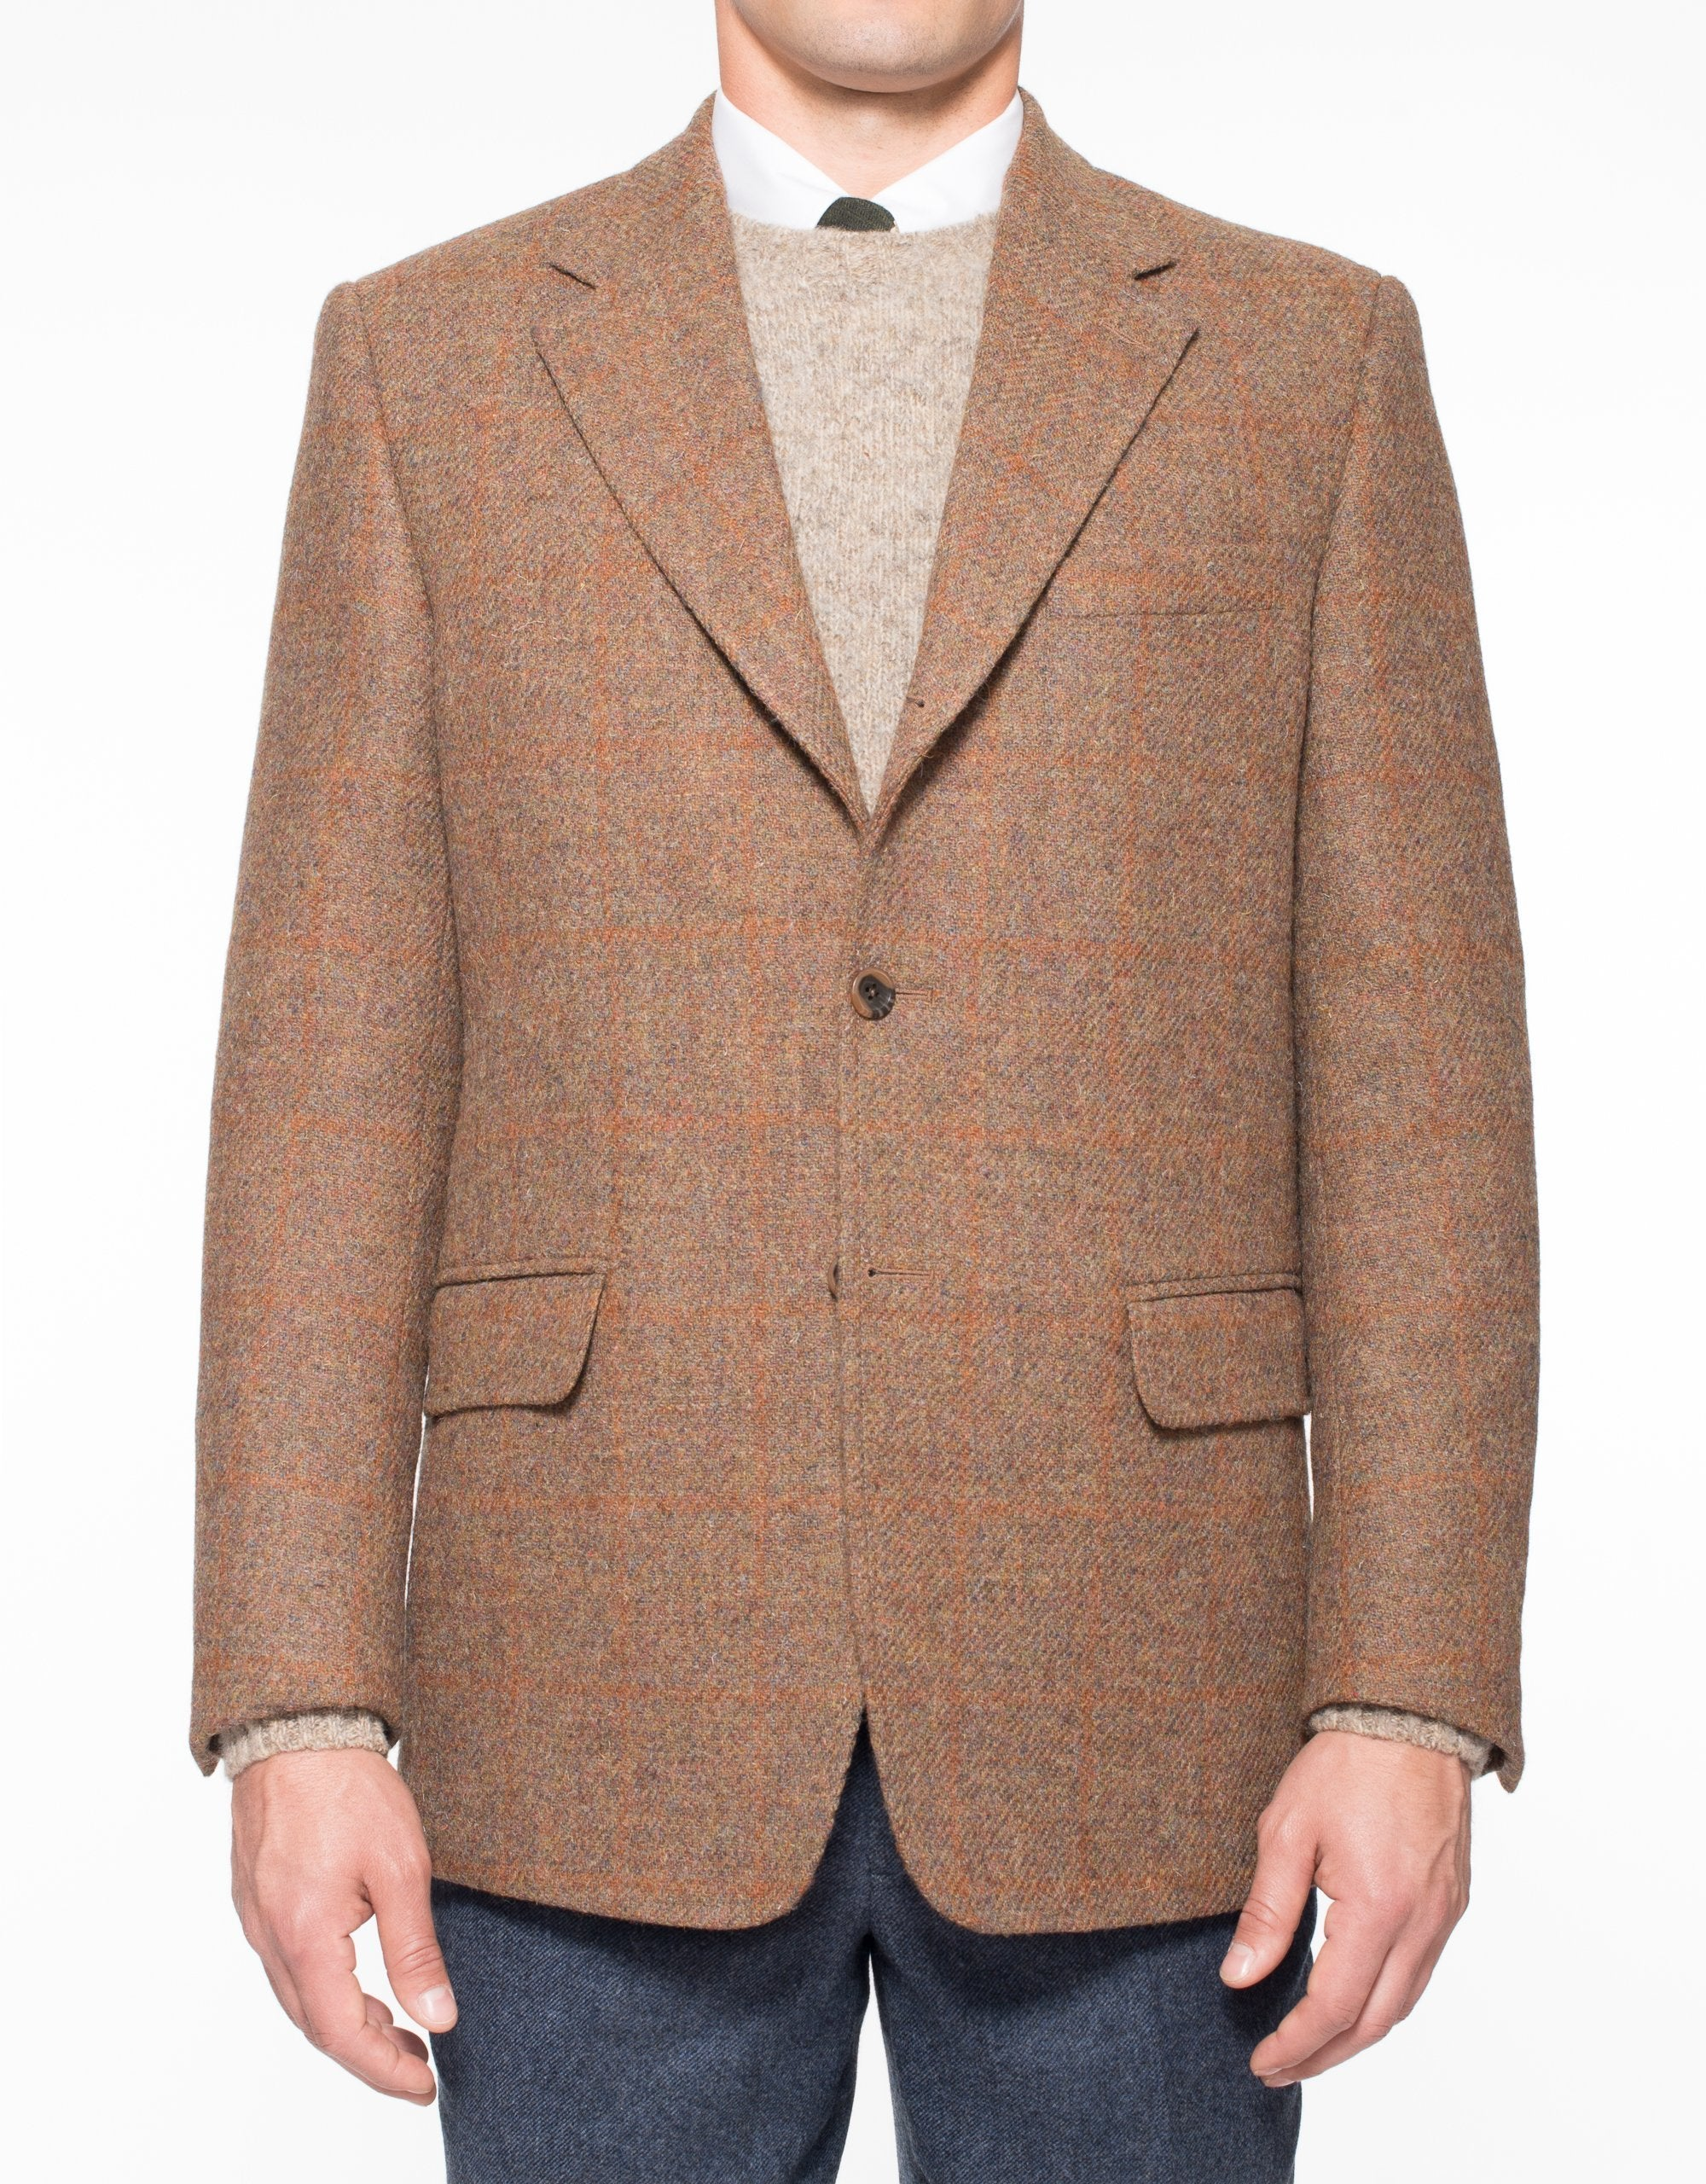 HARRIS TWEED RUST OLIVE WITH TONAL RUST PANE